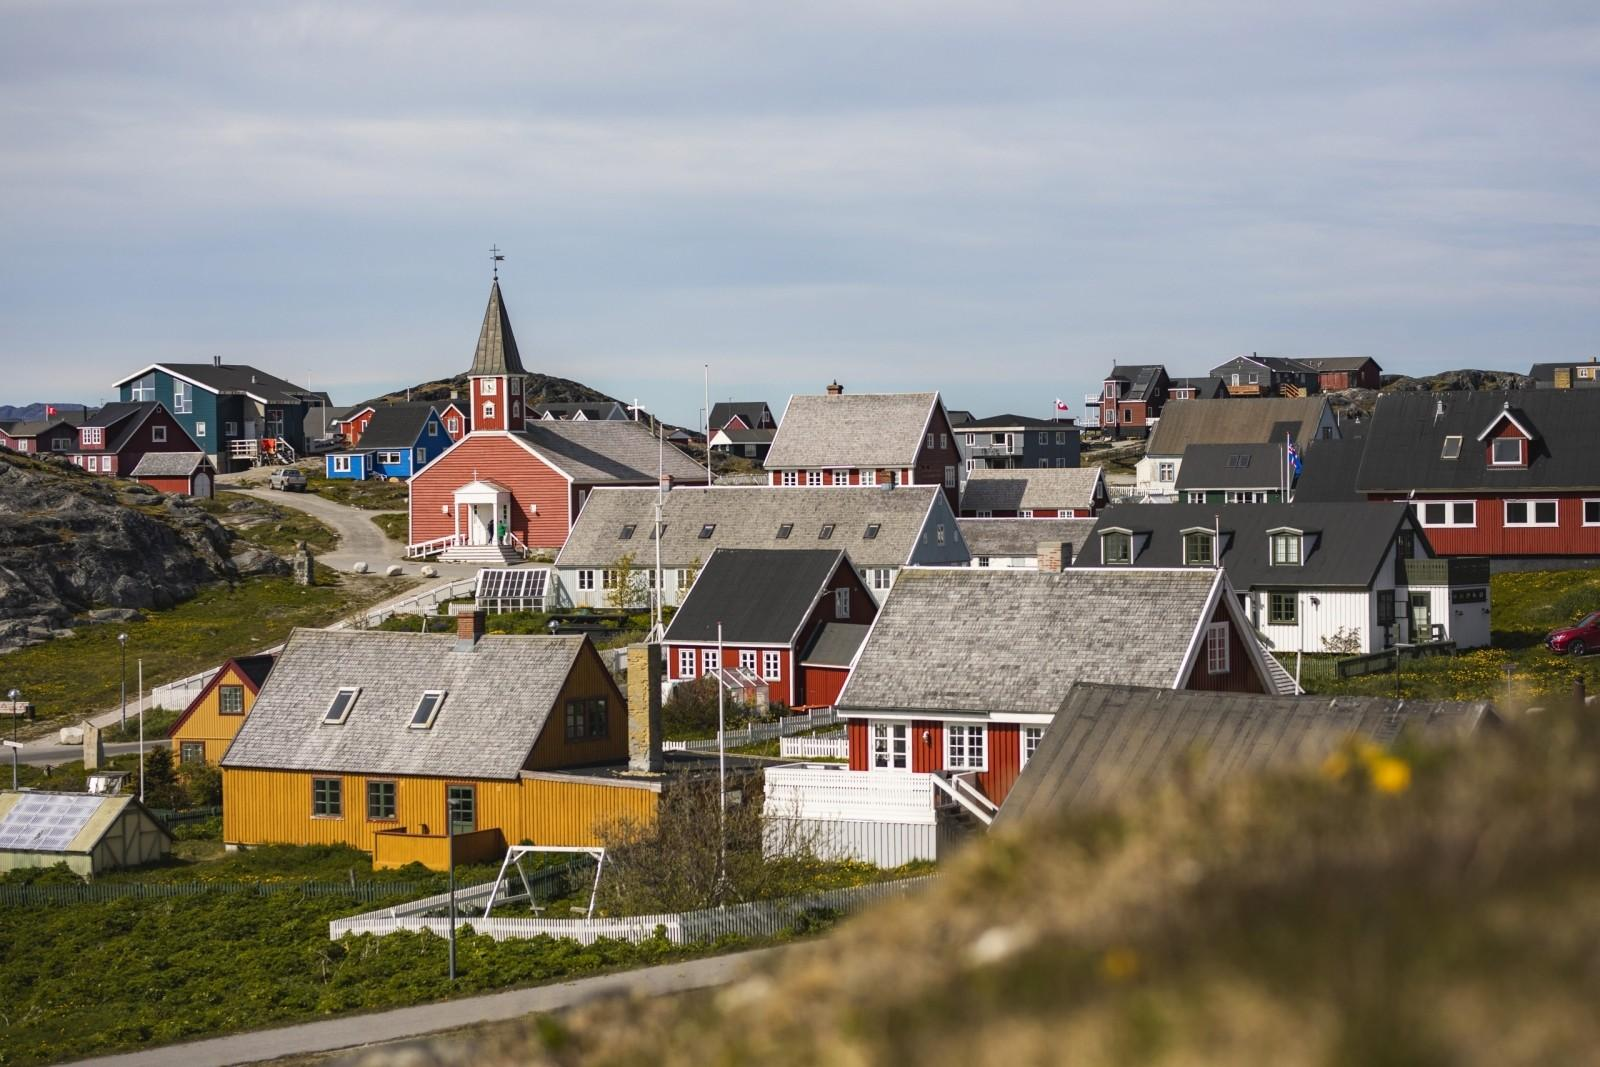 After-The Red Church and the Old Nuuk area